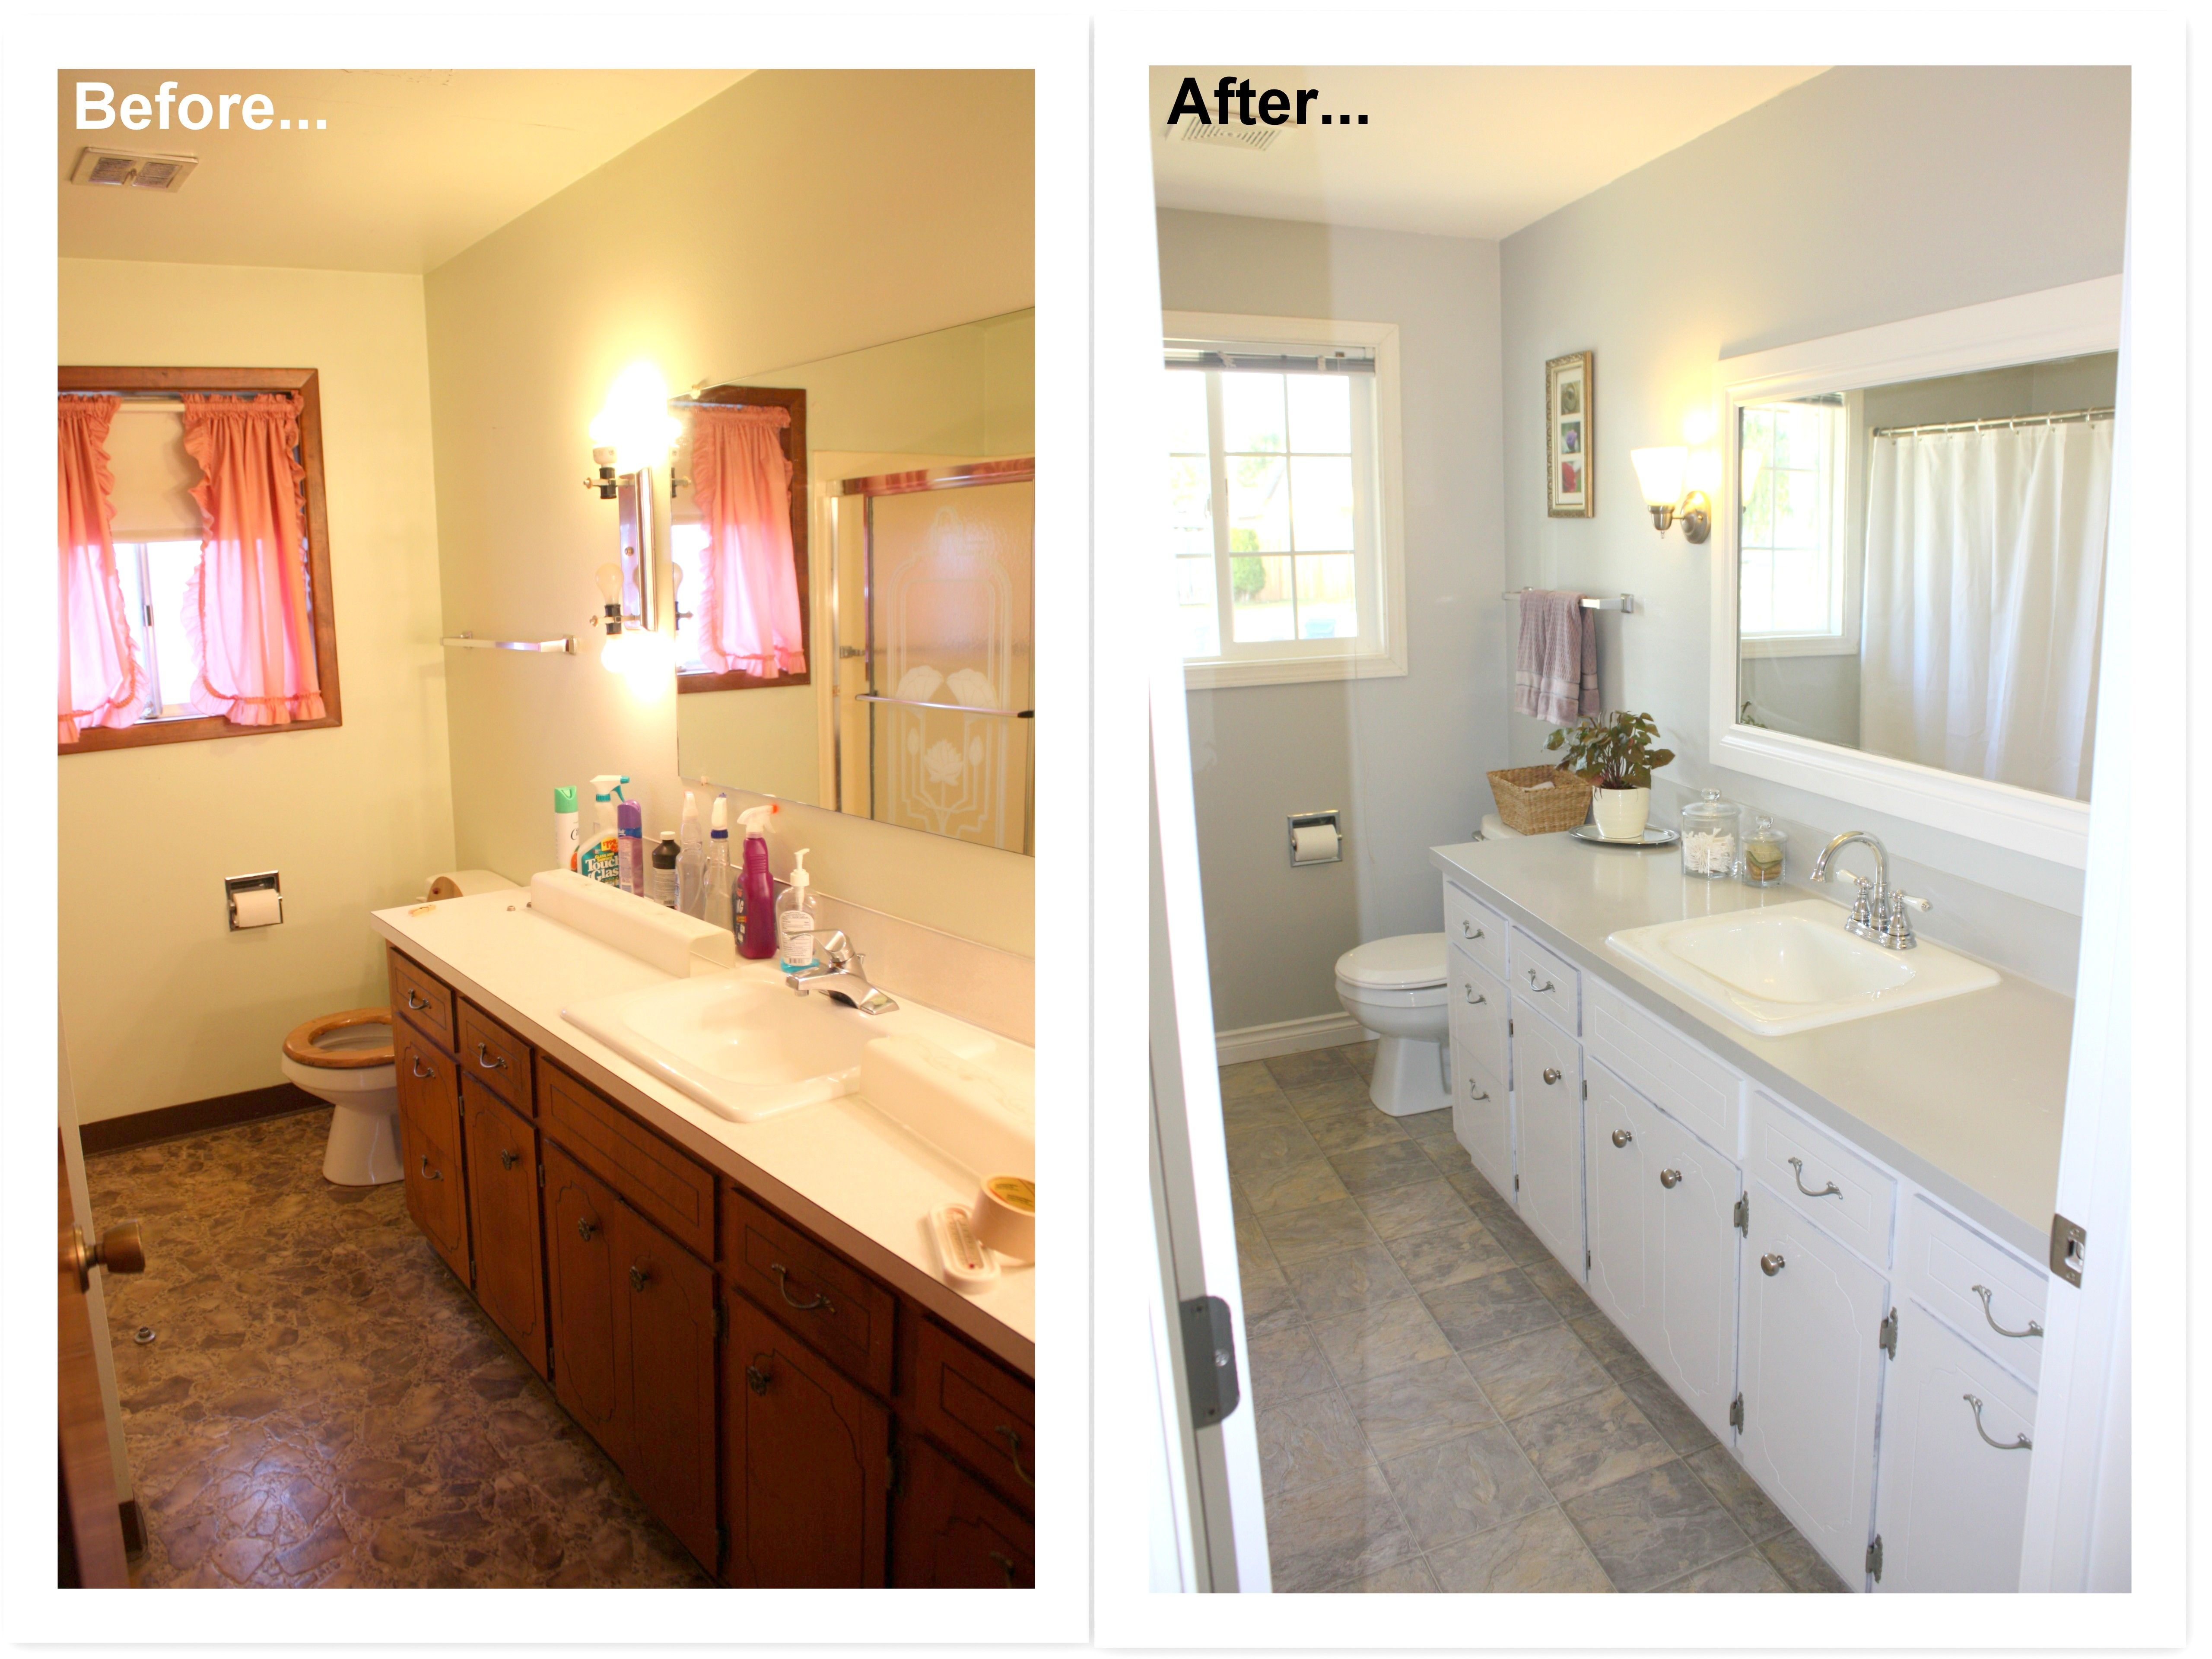 Bathroom Makeover Remodel Before And After 1960 S Bathroom To Modern And Updated Gray Bathroom 1960s Bathroom Remodel Bathroom Makeover 1960 Bathroom Remodel